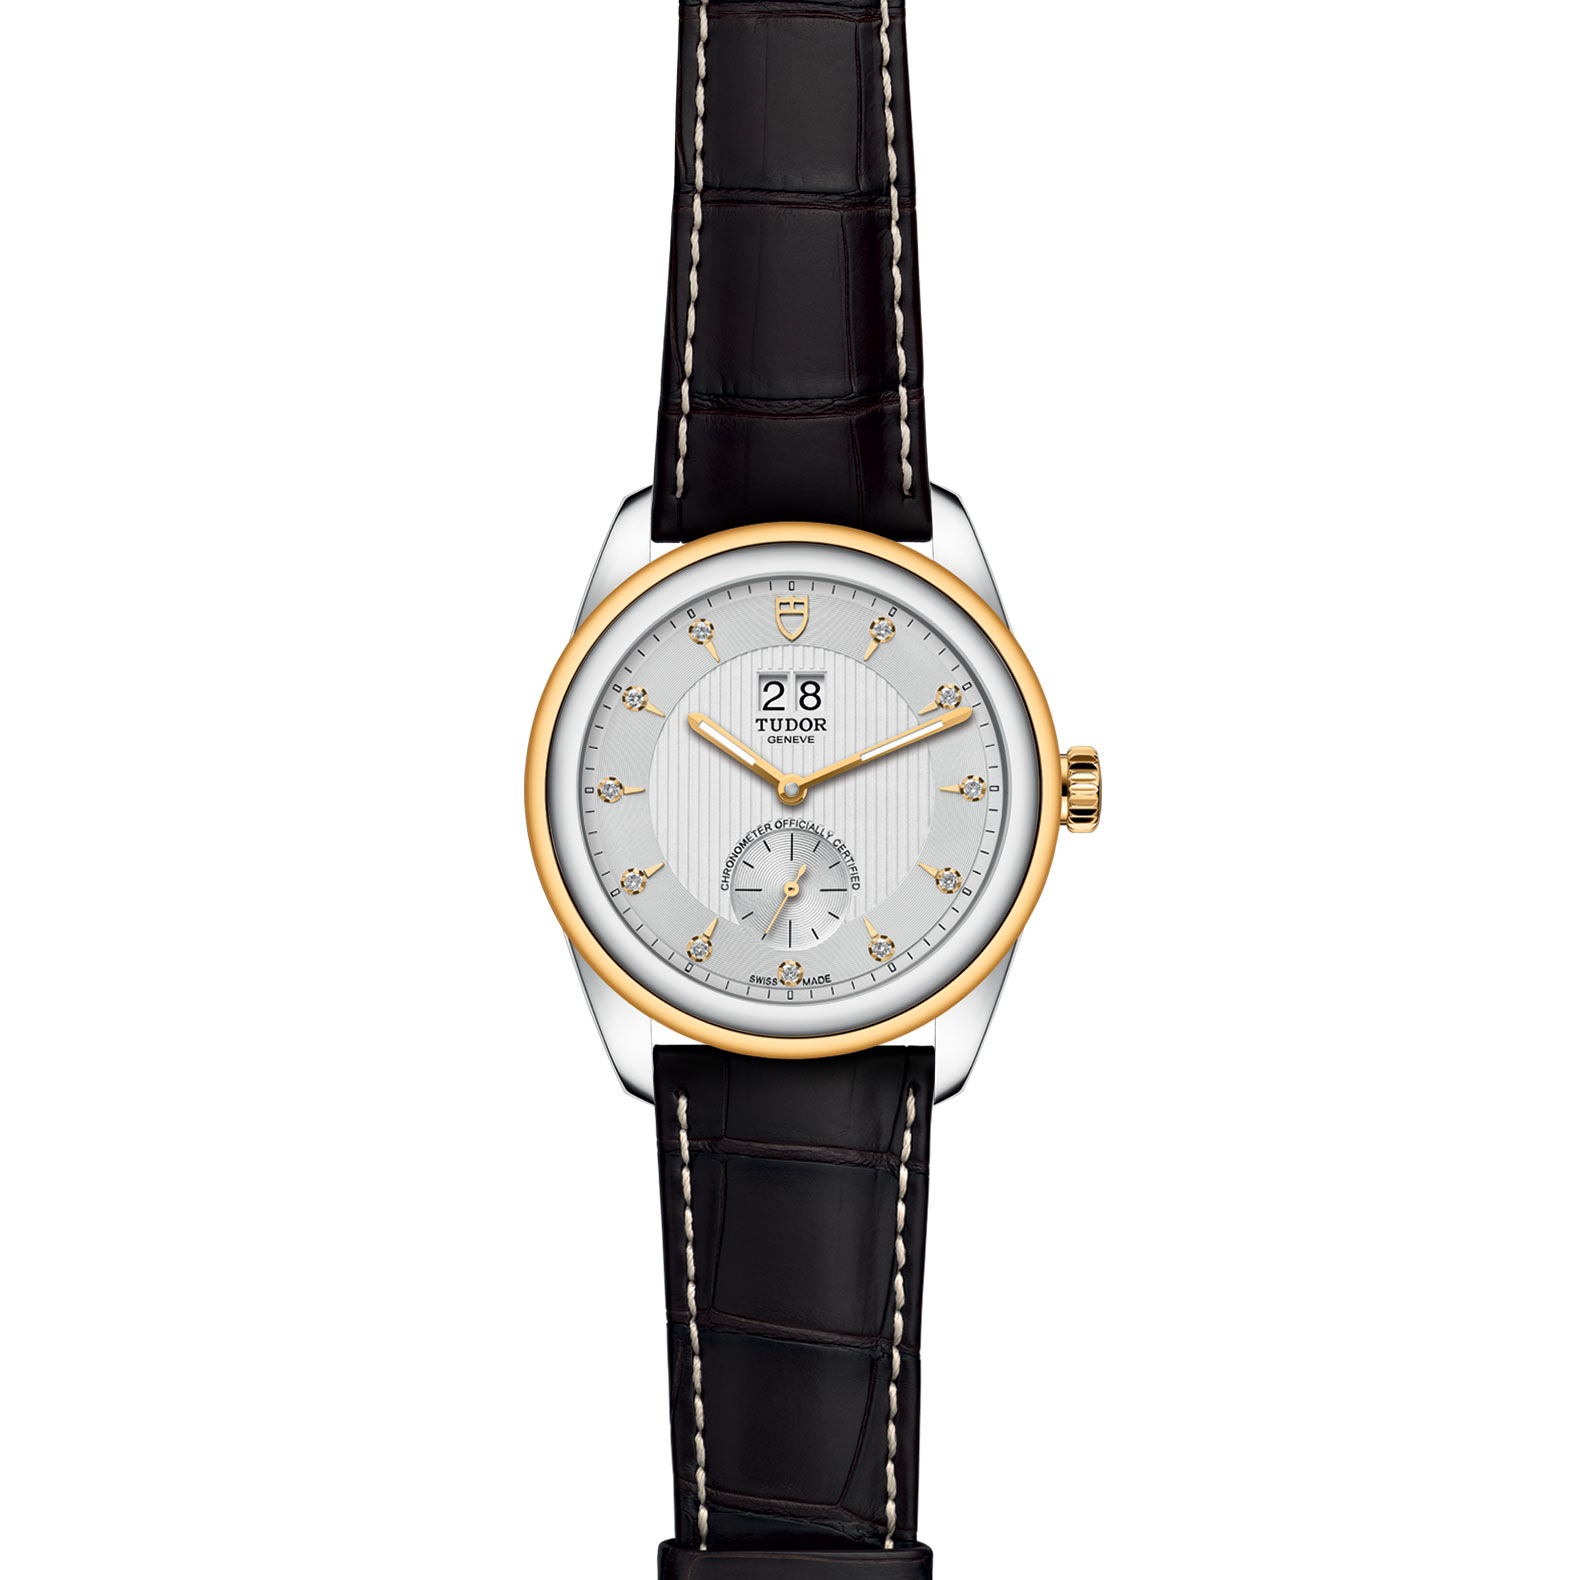 TUDOR Glamour Double Date M57103 0023 Frontfacing